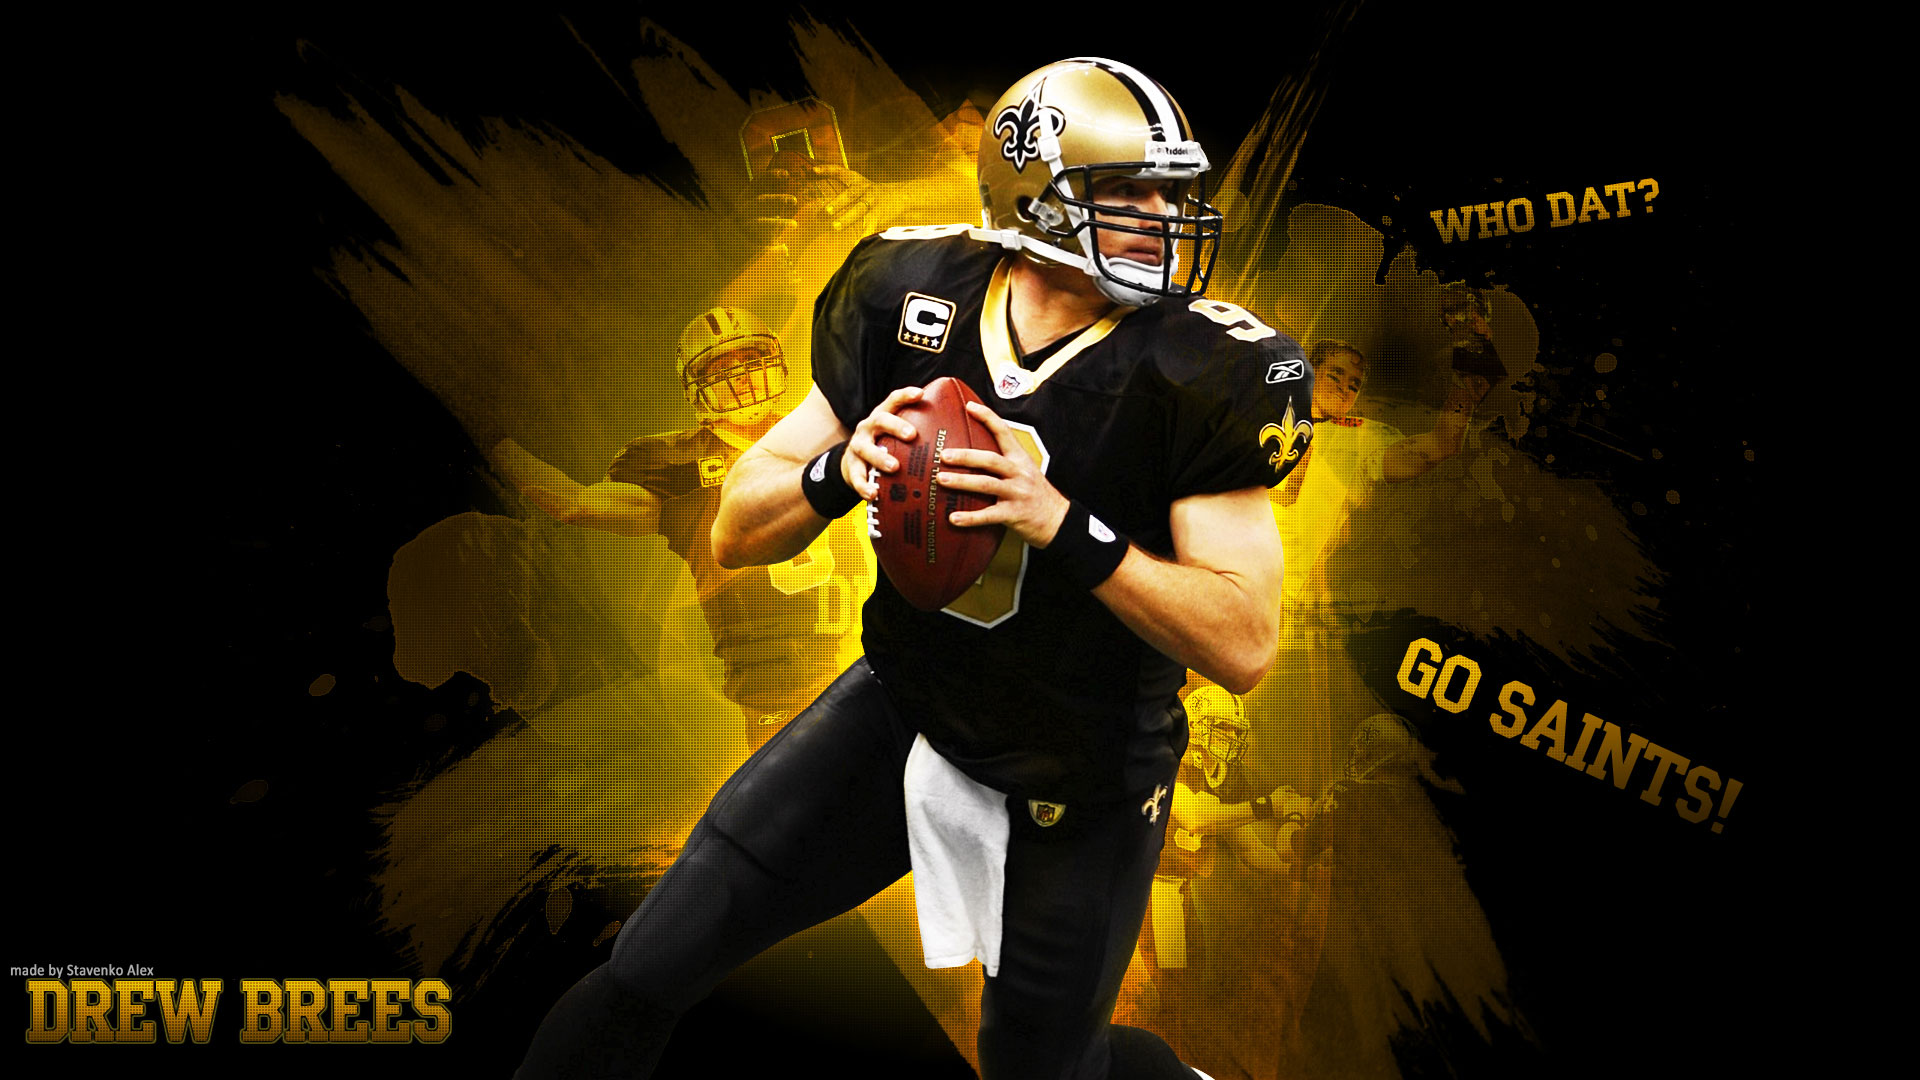 Drew Brees Wallpapers High Quality Download 1920x1080